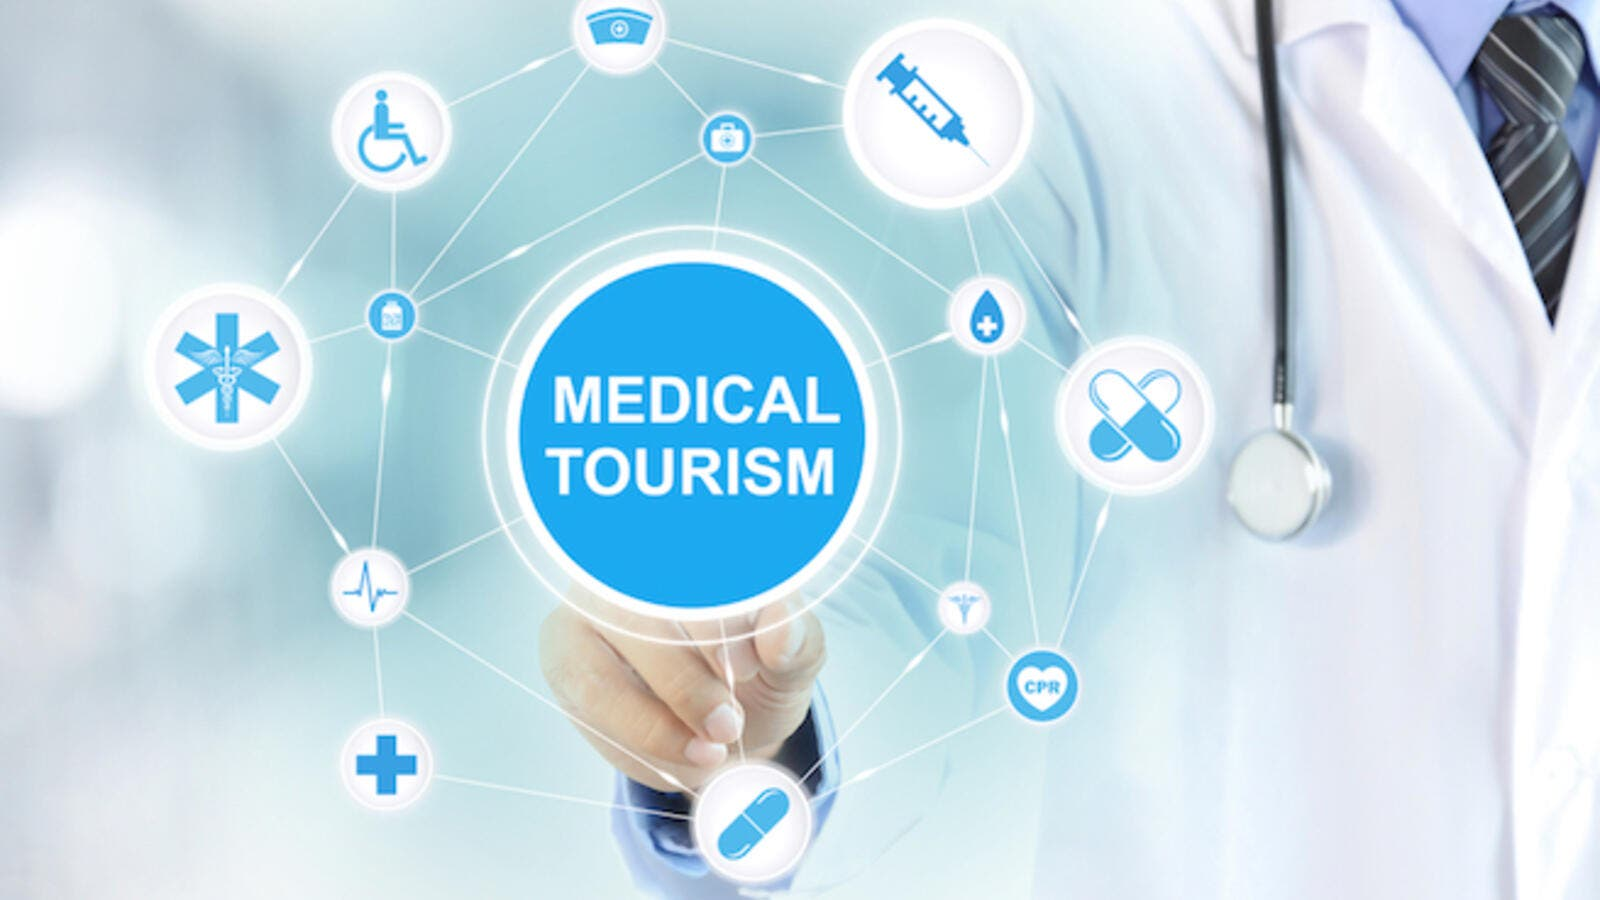 The number of medical visitors surpassed 433,000 in last year, up 62 percent from 267,000 in 2013, TurkStat data showed. (Shutterstock)